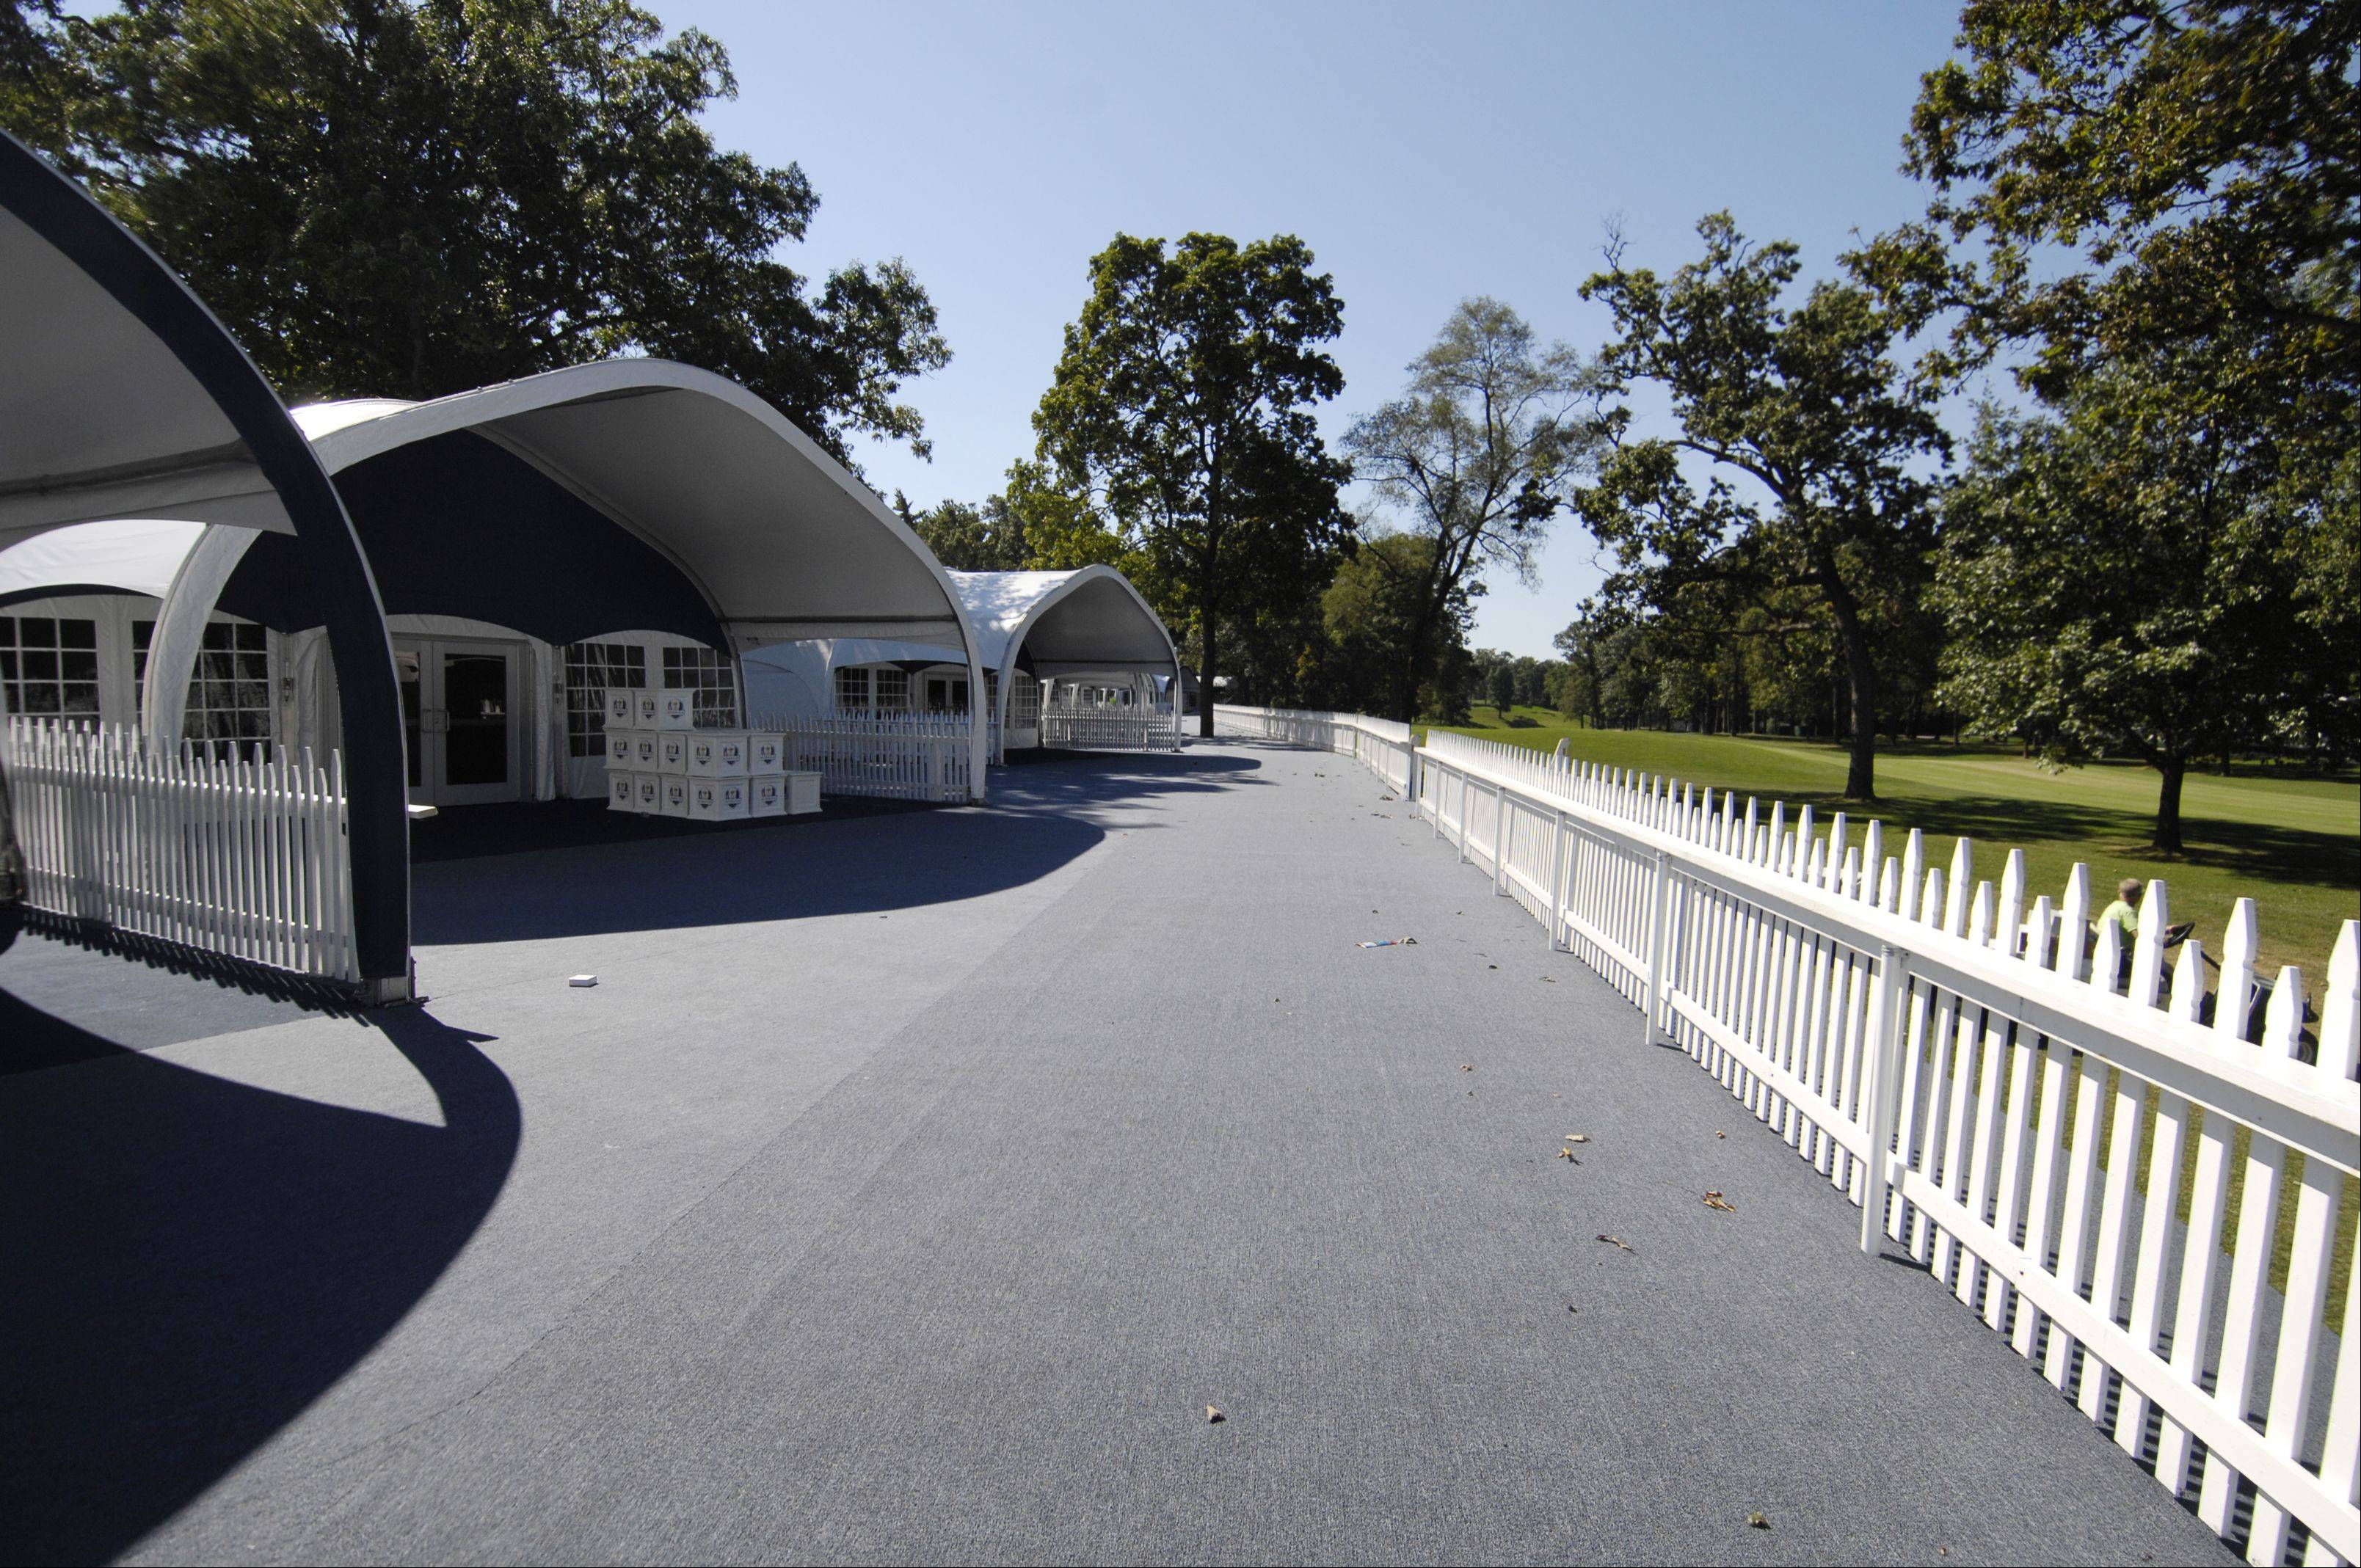 THE DECK: The chalets at Medinah open up to carpeted decks.